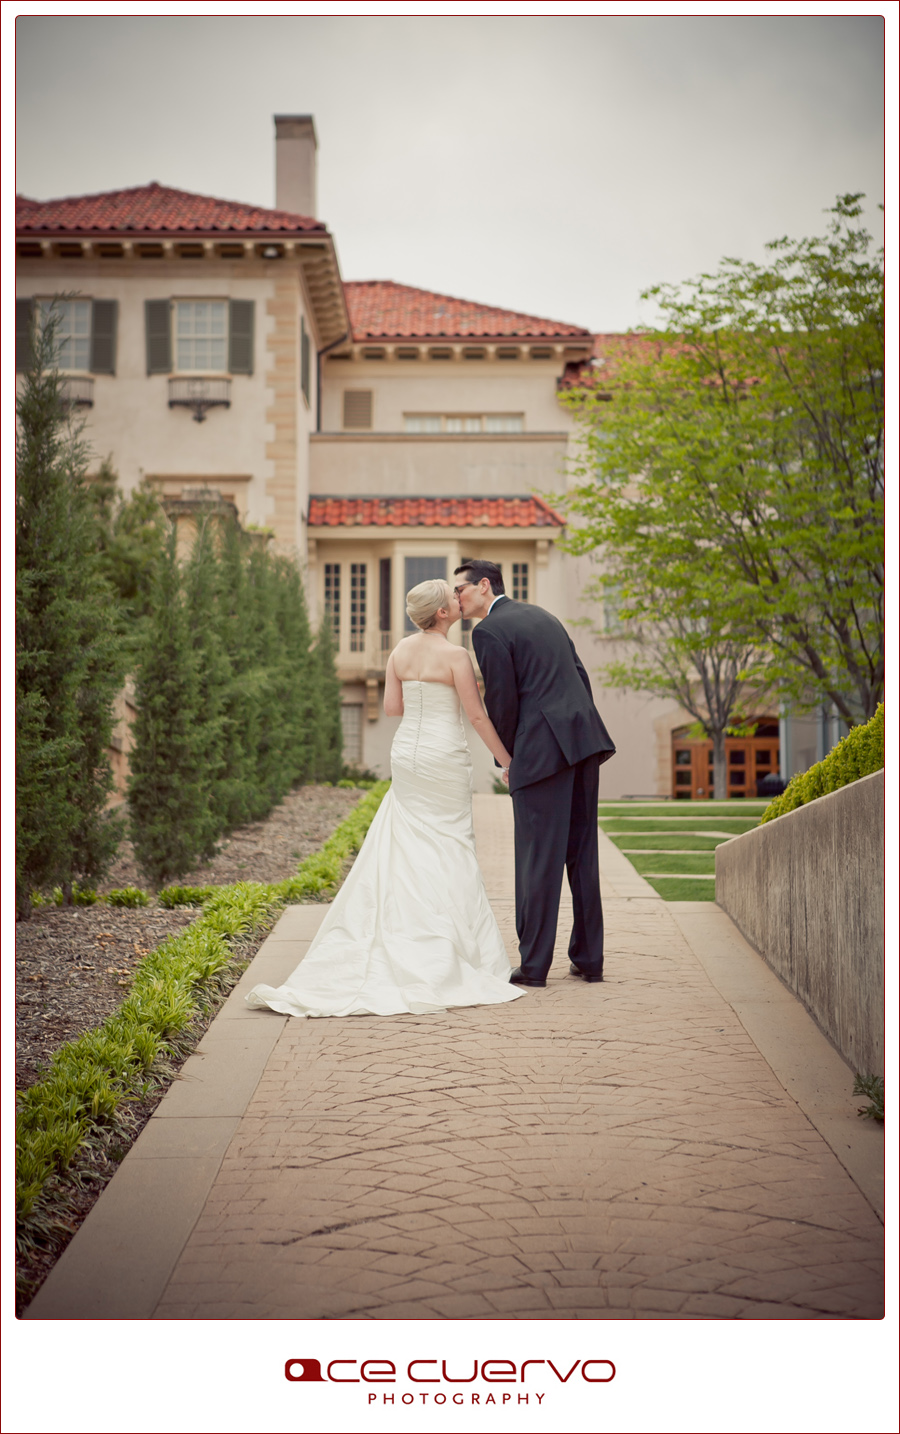 Ace Cuervo Photography, Tulsa Wedding Photography, Philbrook, outdoor wedding